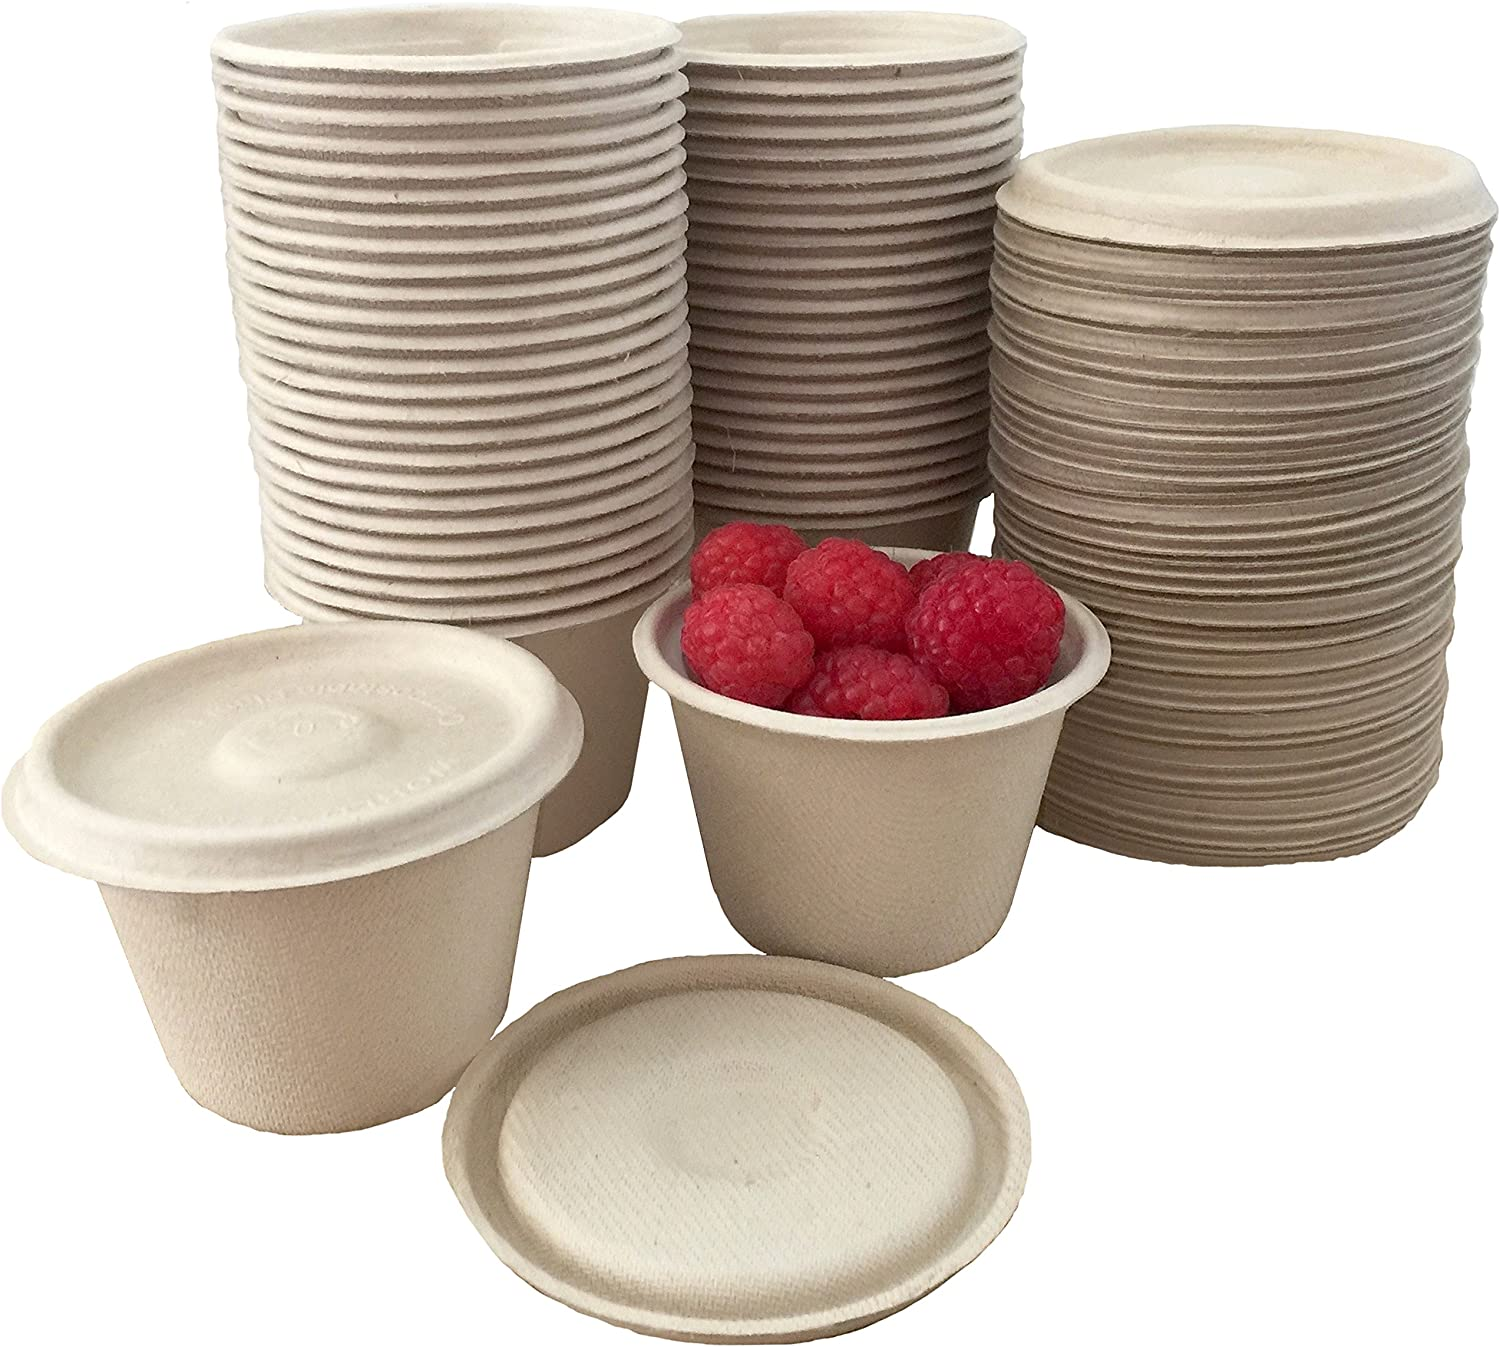 4 Ounce Souffle Cups and Lids - 100% Biodegradable and Compostable - Bagasse/Wheat Fiber - 50 Pack Outside the Box Papers Brand